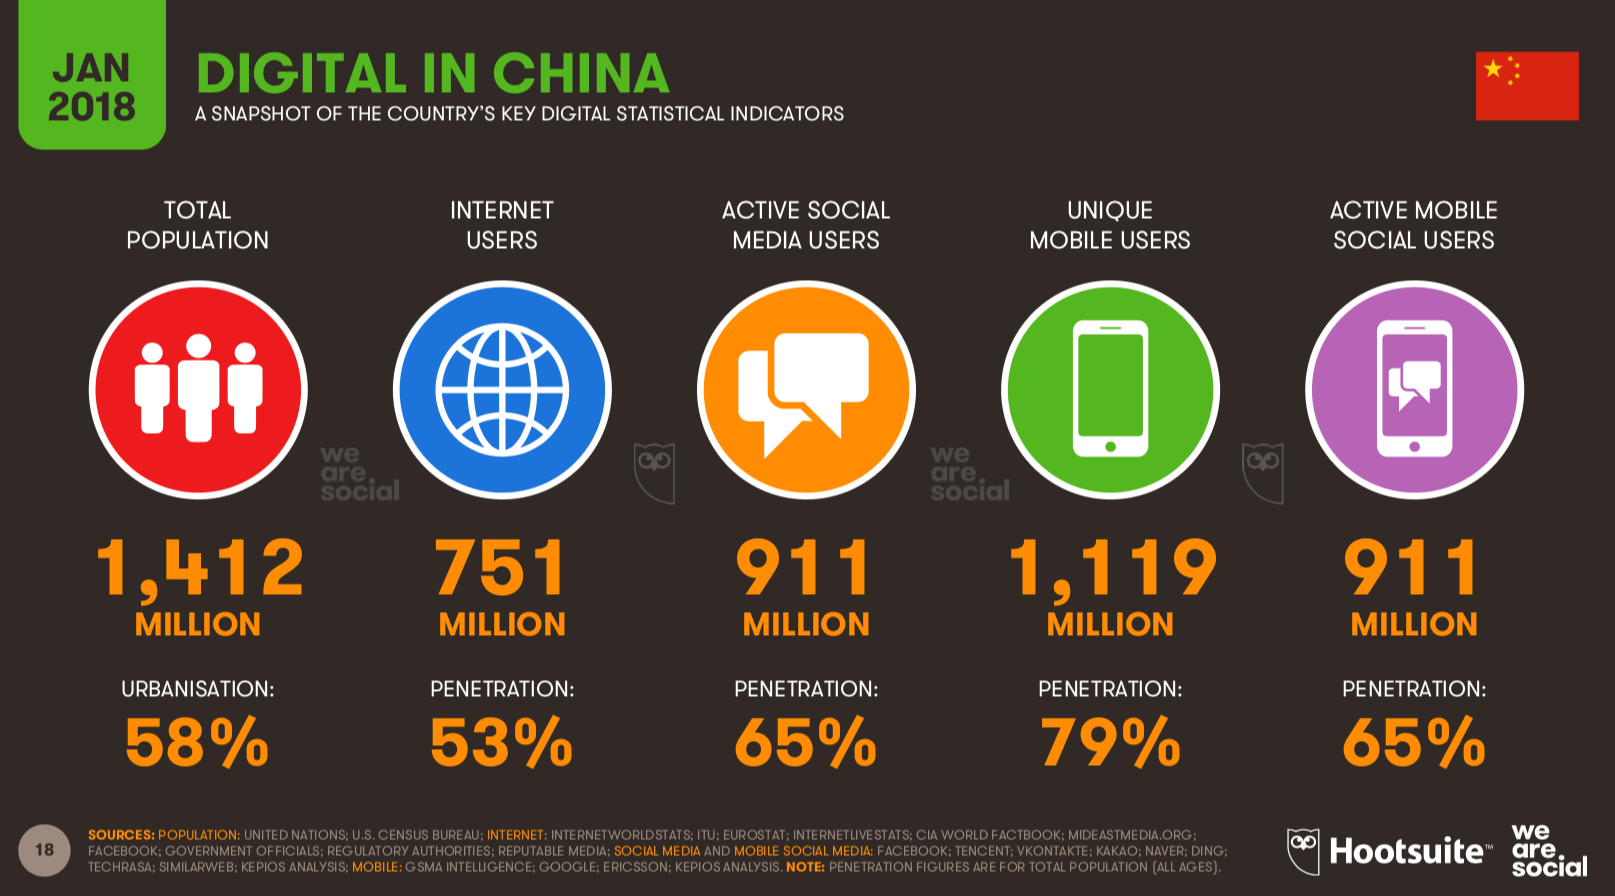 Digital in China Report - Hootsuite We are Social